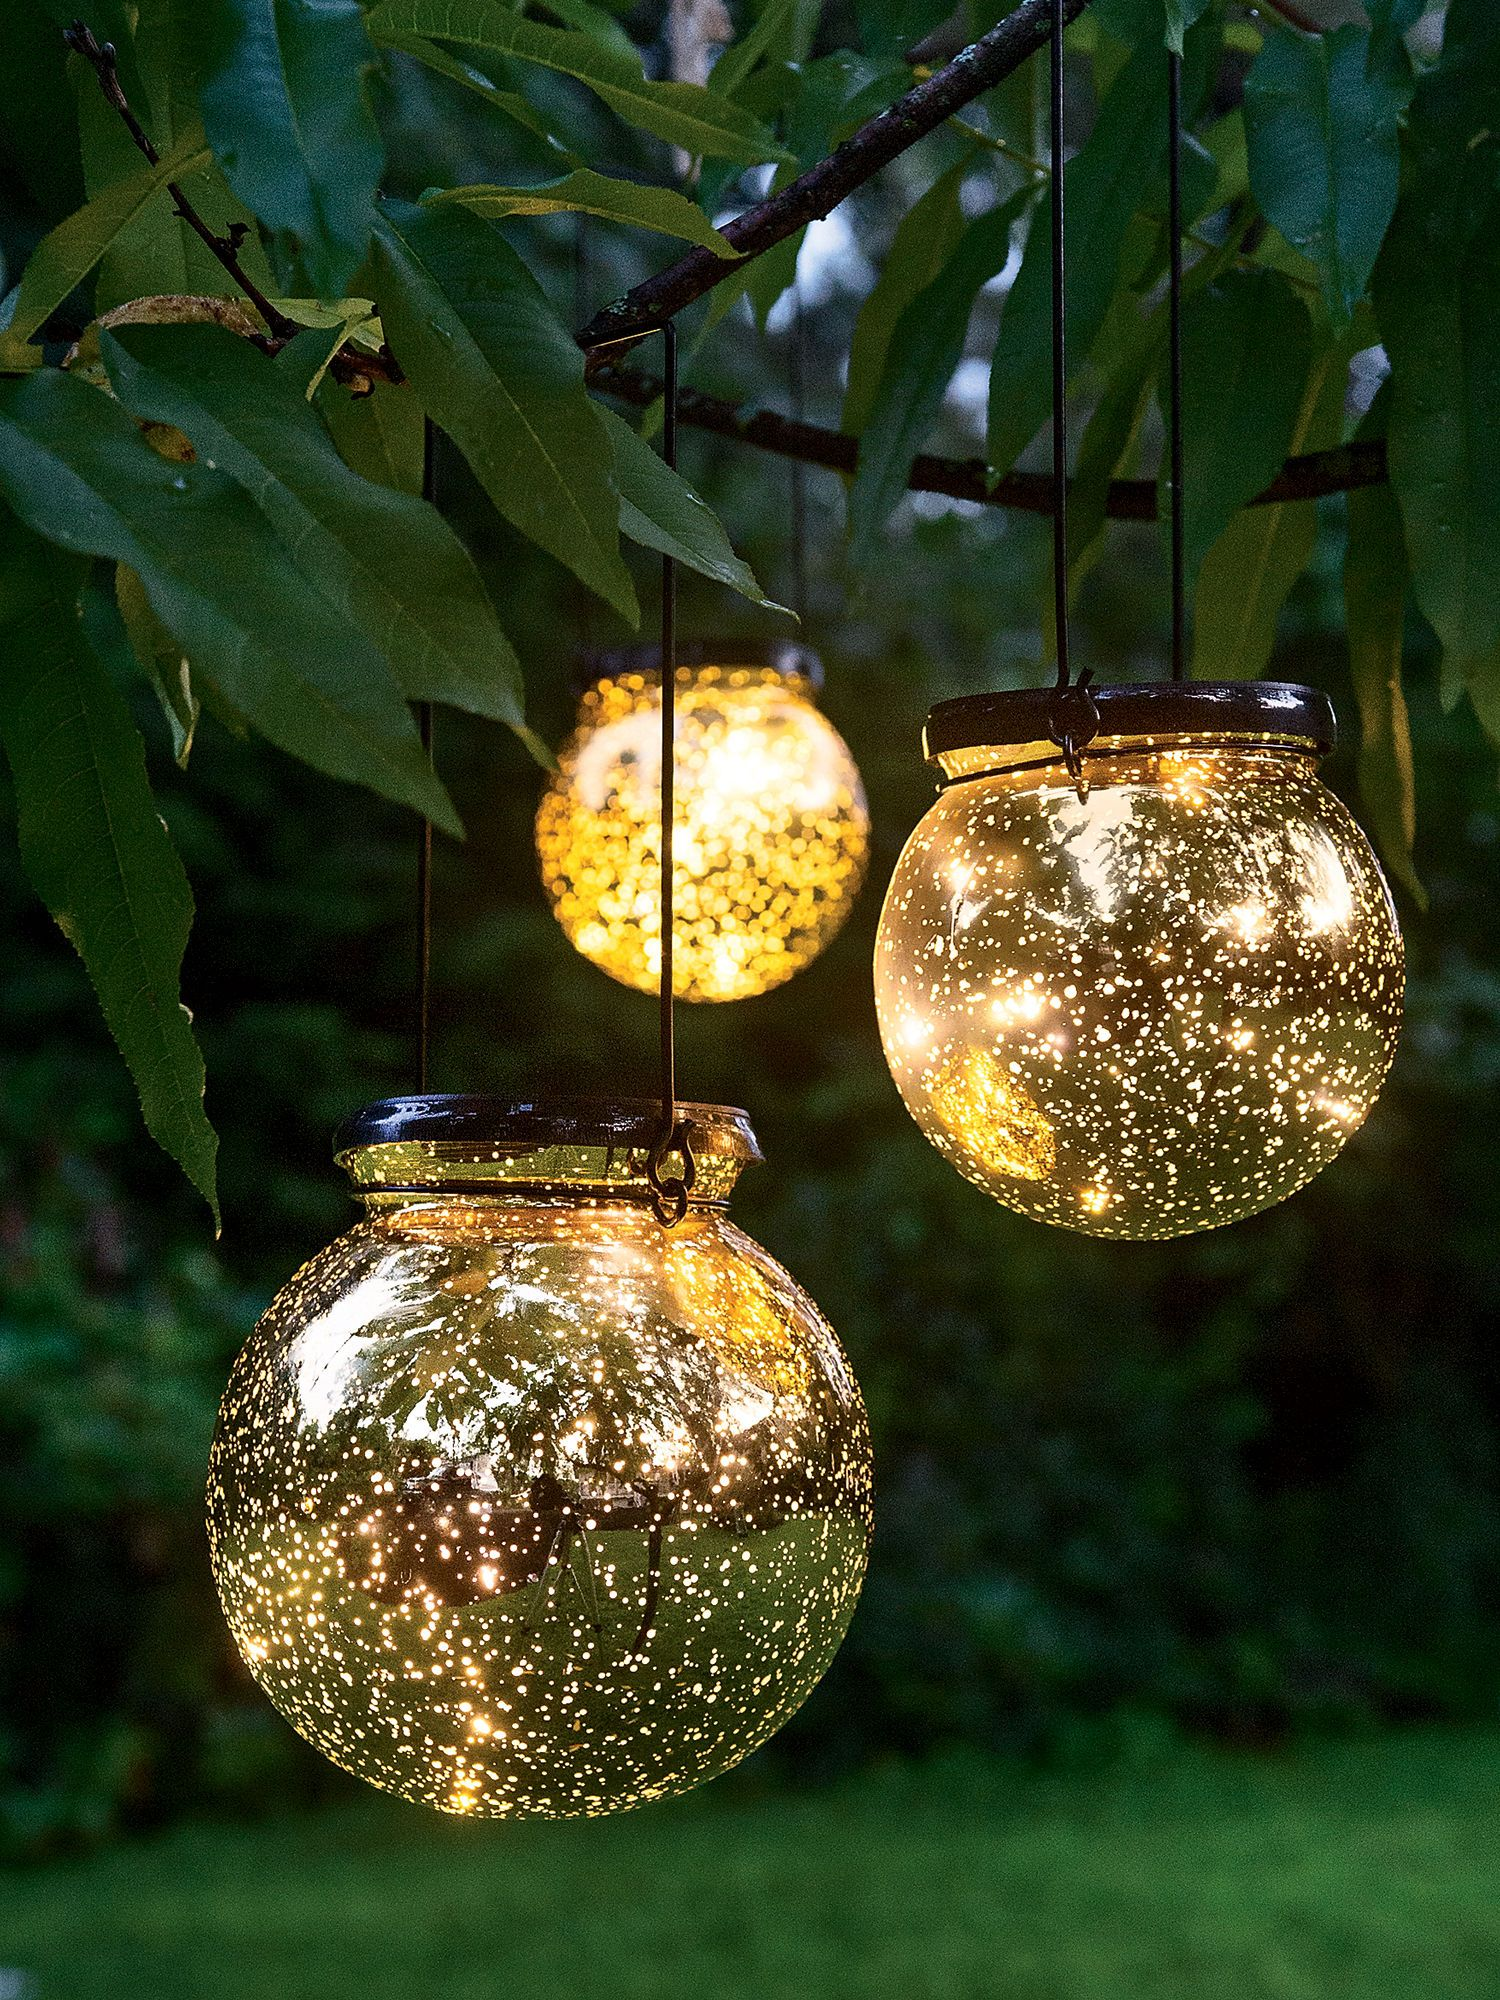 Outdoor Fairy Lighting Awesome garden lights for your sweet backyard solar lights awesome garden lights for your sweet backyard workwithnaturefo